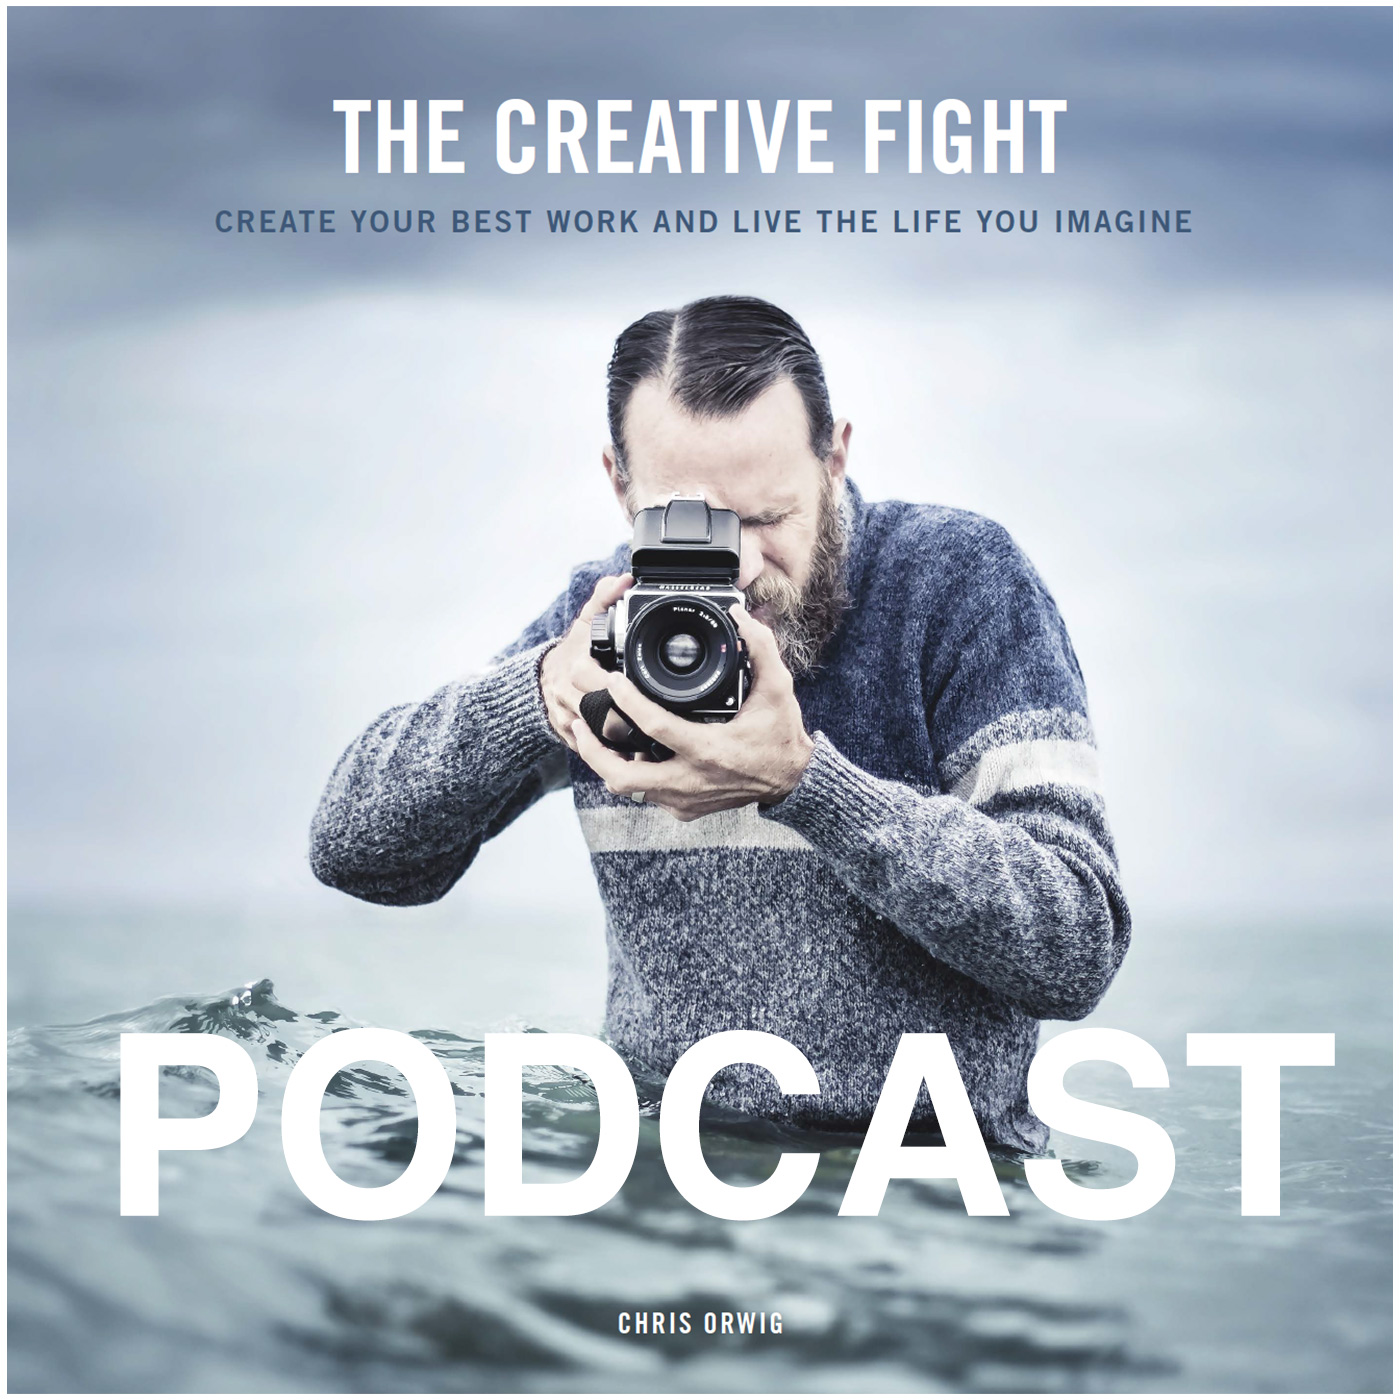 BLOG / PODCAST - THE CREATIVE FIGHT